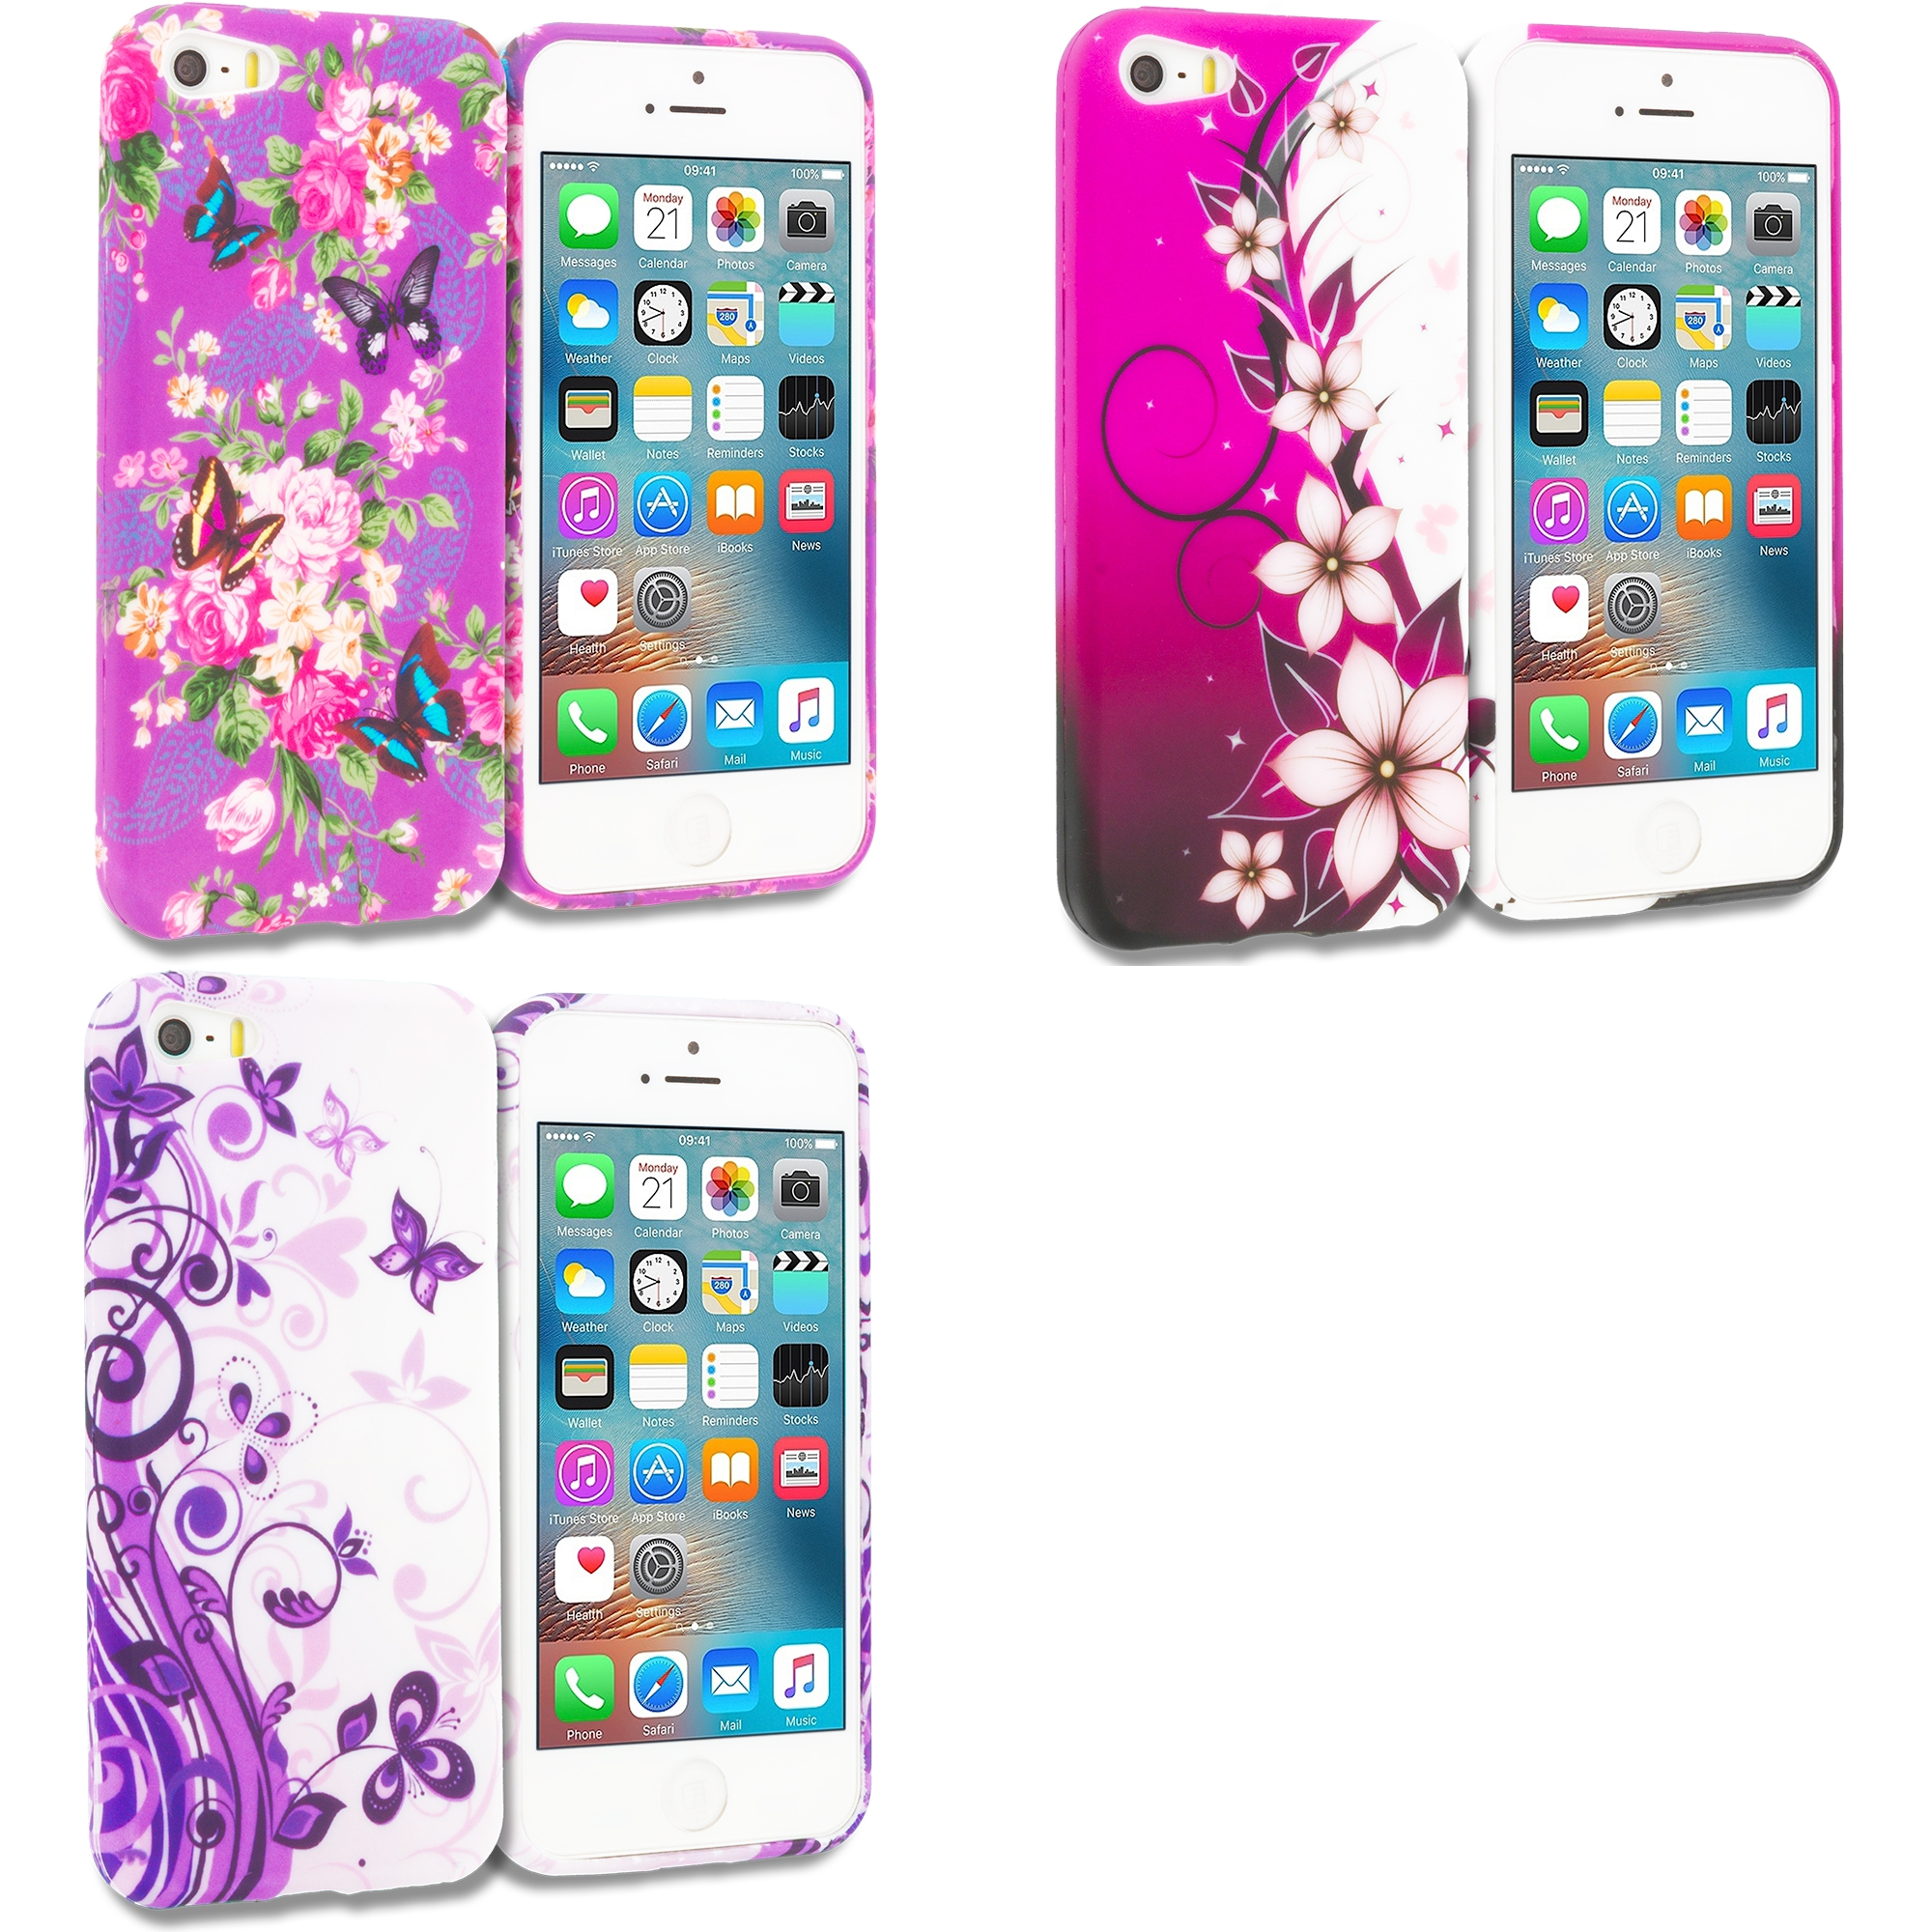 Apple iPhone 5/5S/SE Combo Pack : Purple Mixed Flower TPU Design Soft Rubber Case Cover